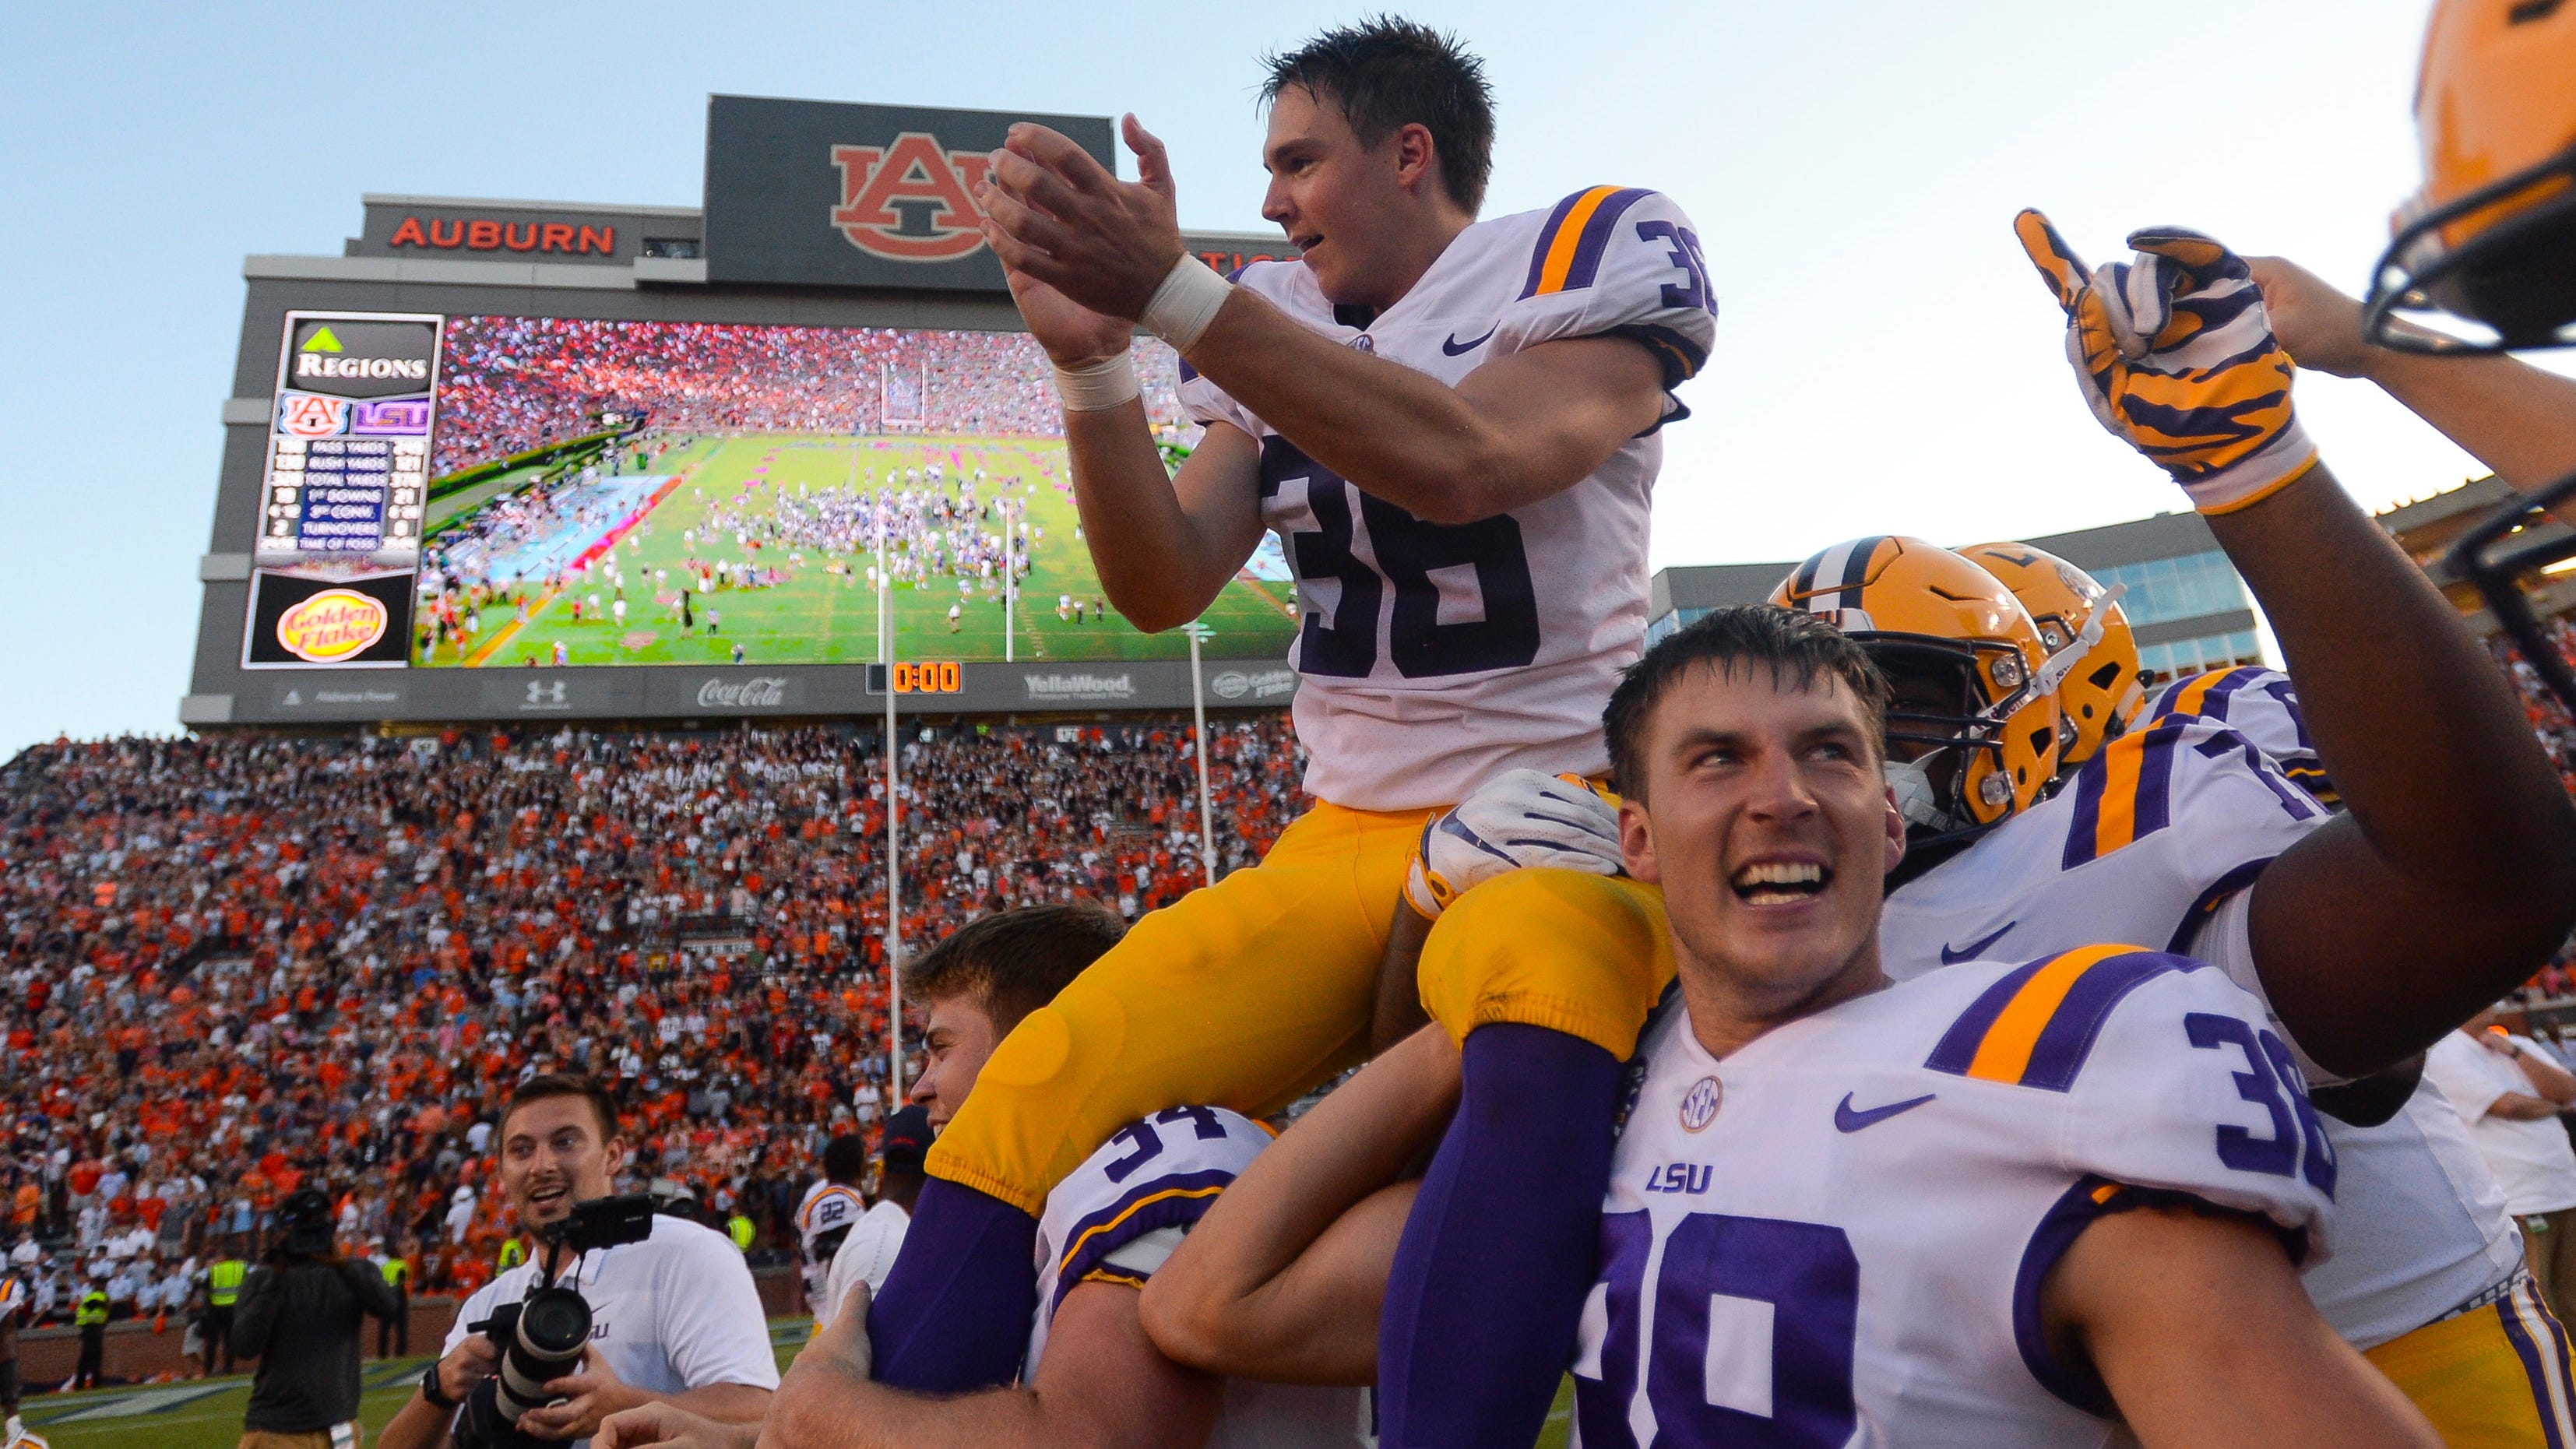 Cole Tracy celebrates after kicking the game-winning field goal to defeat the Auburn.